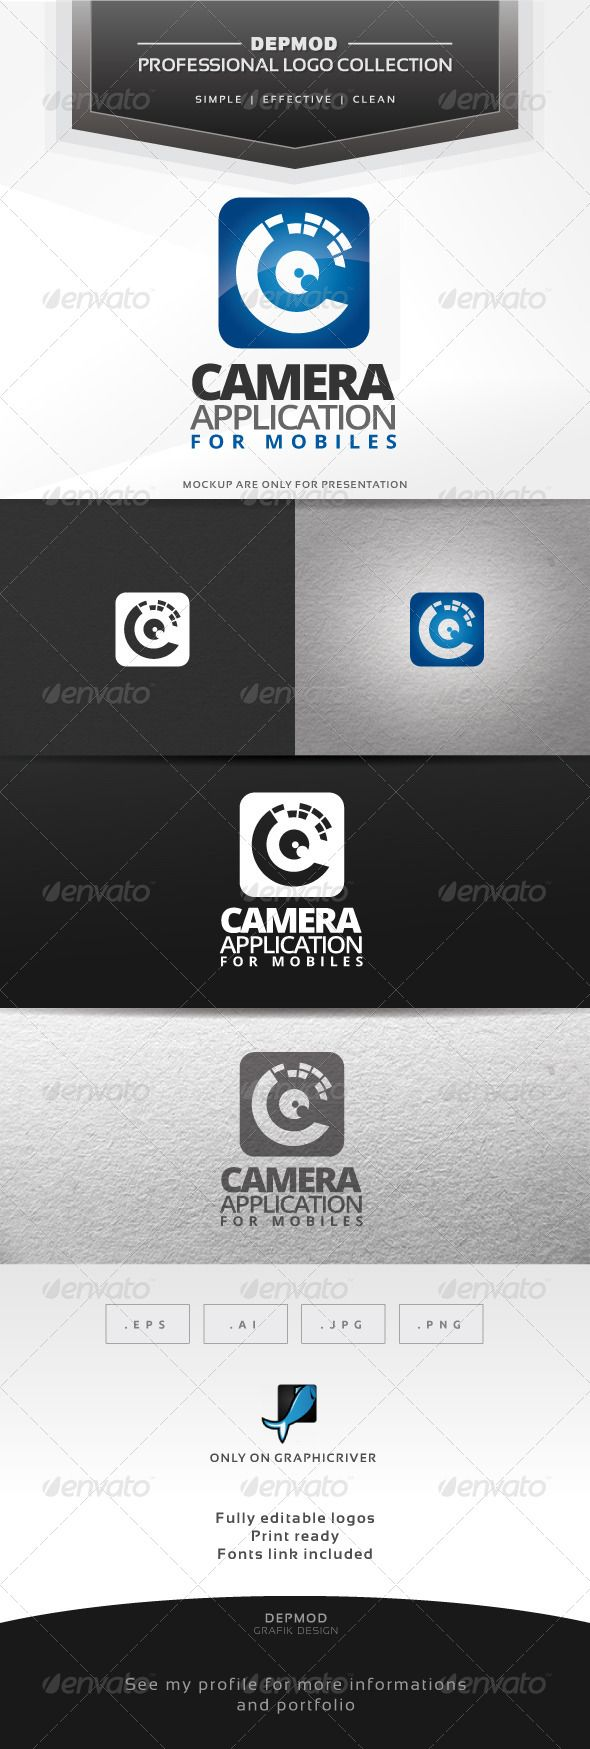 Camera Application Logo — Vector EPS #mobile #pixel • Available here → https://graphicriver.net/item/camera-application-logo/6788272?ref=pxcr